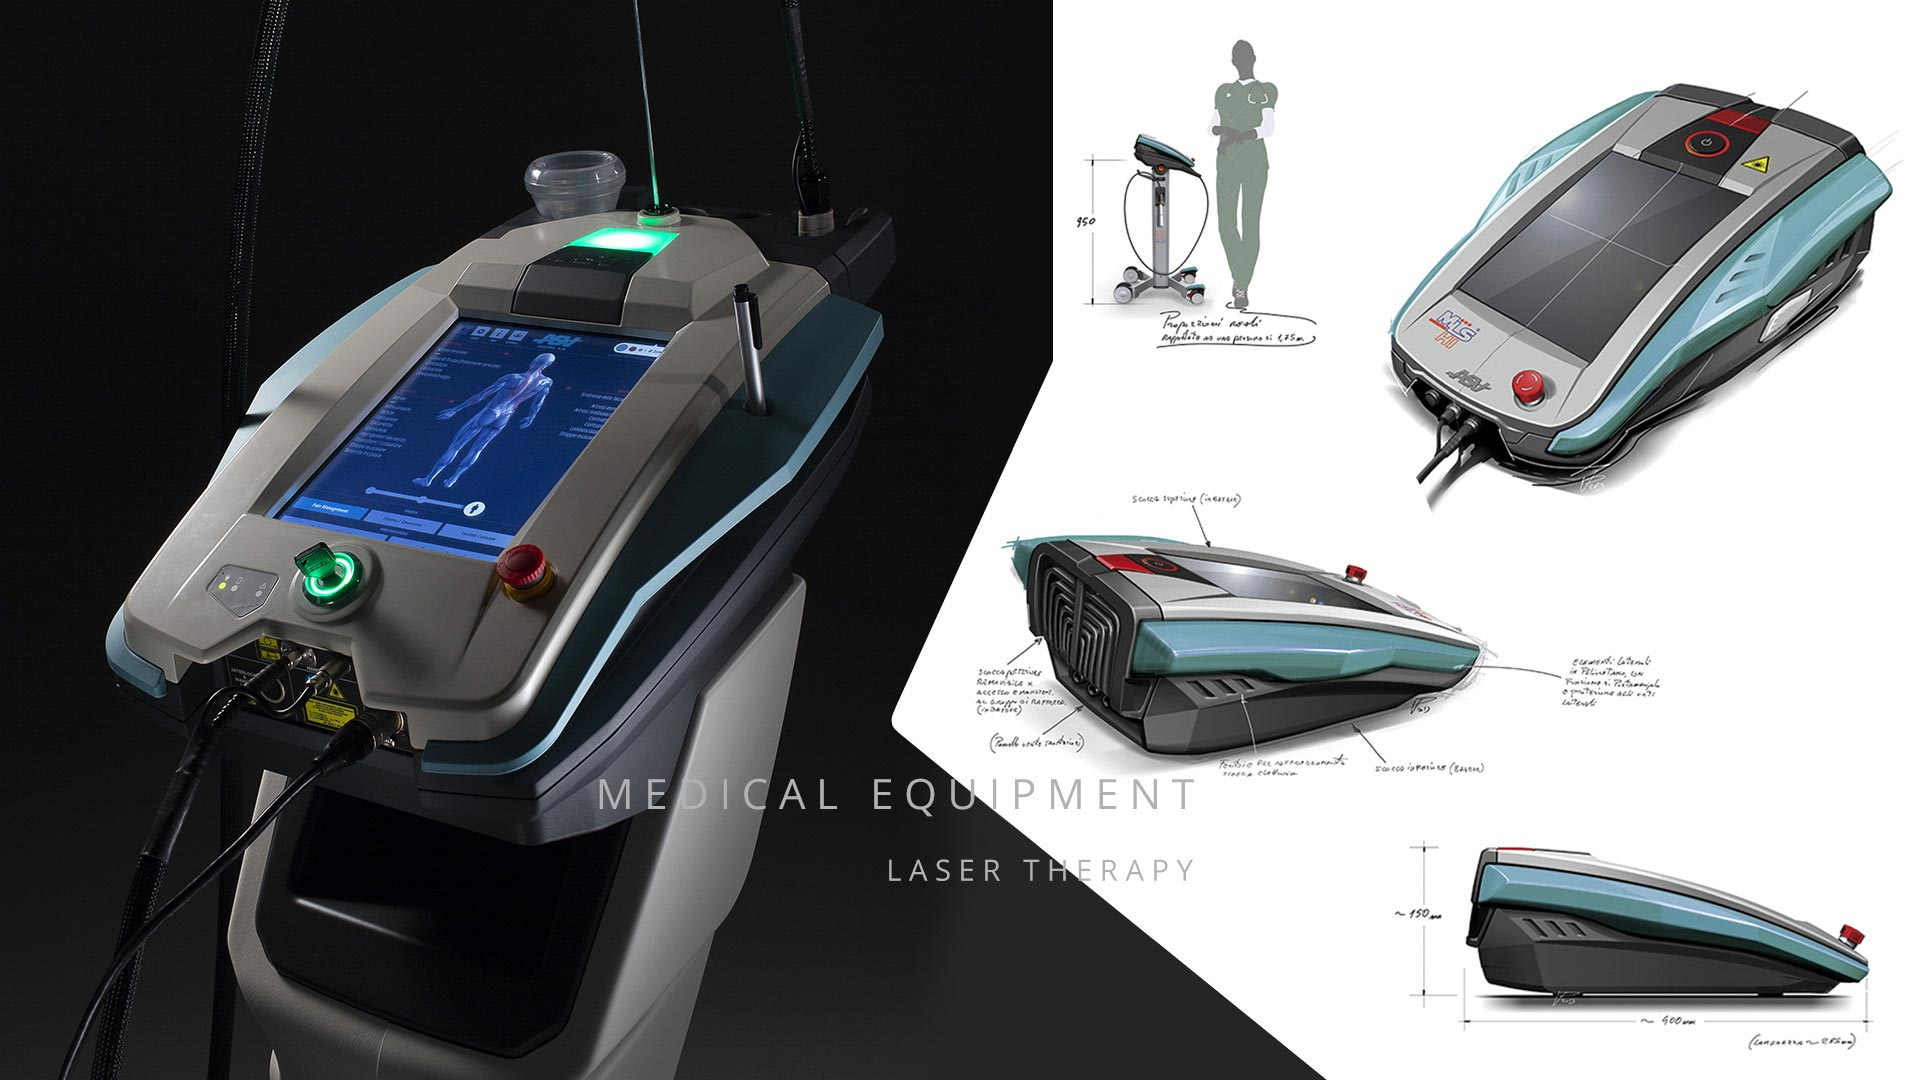 AMV Design Medical Equipment: Laser Therapy